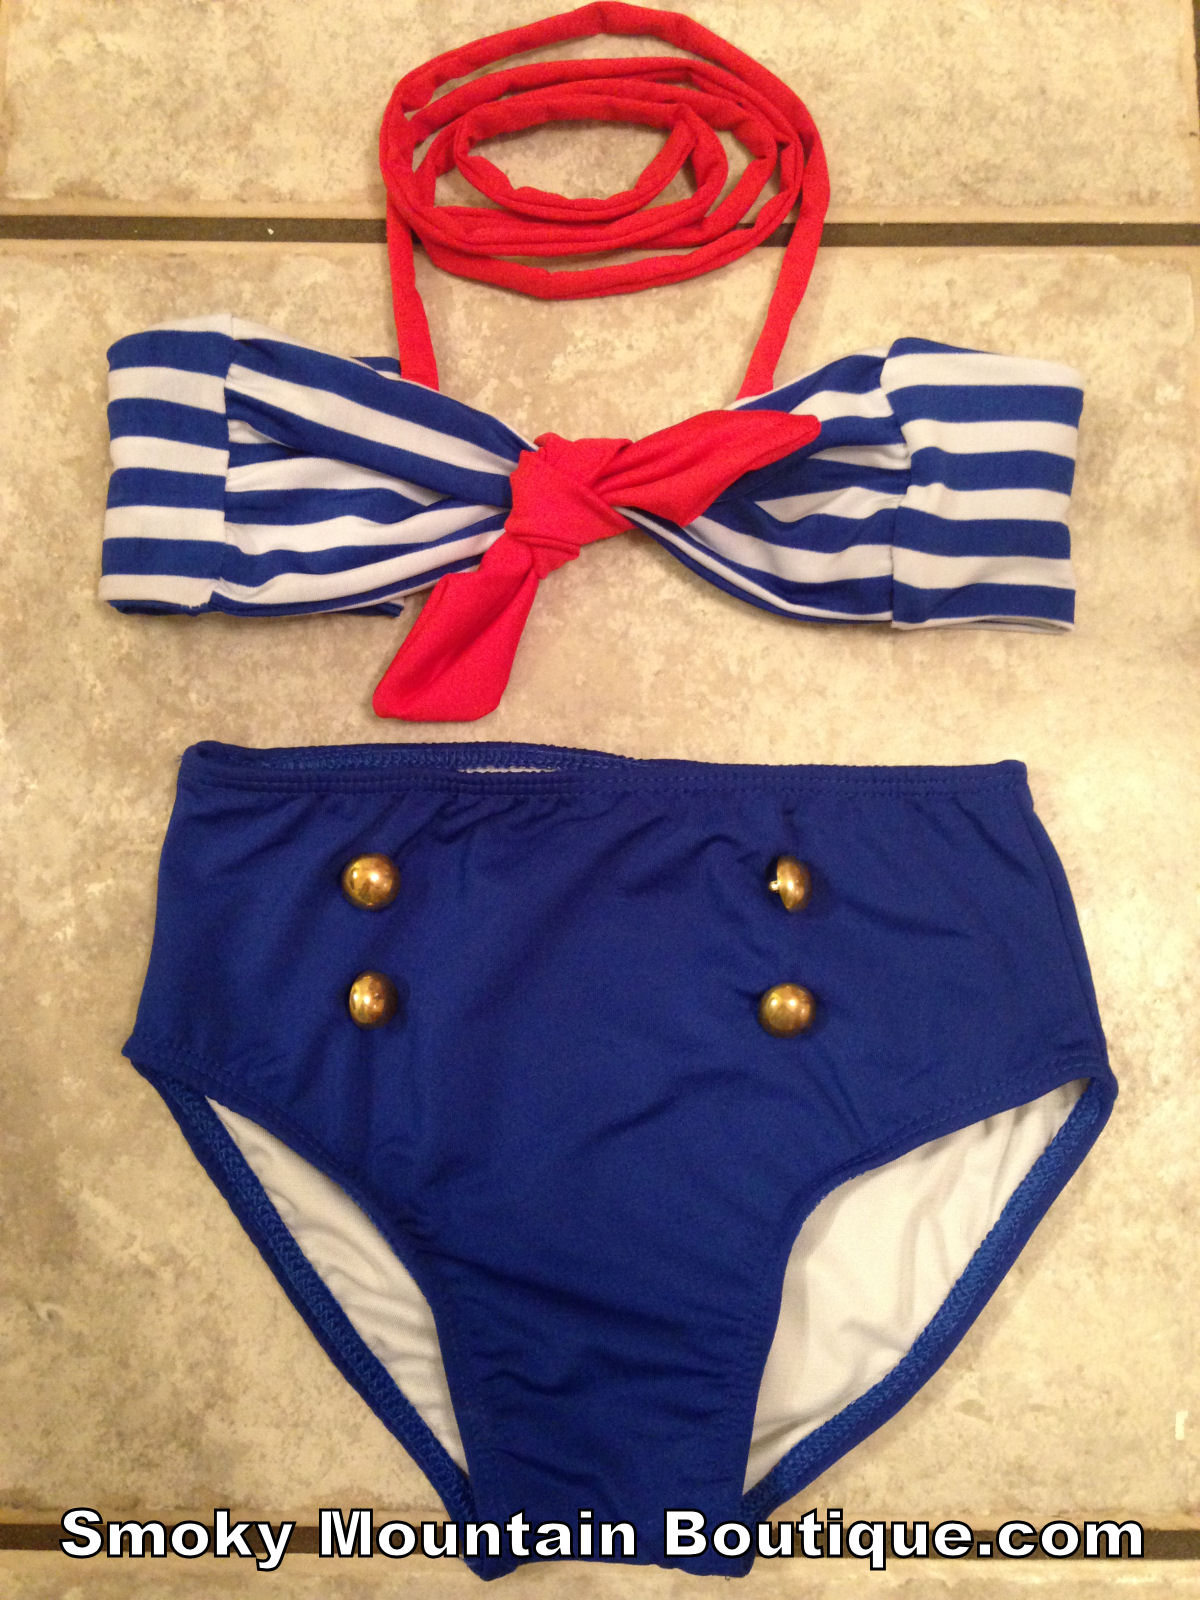 Blue & white striped top and blue bottoms (child's size)